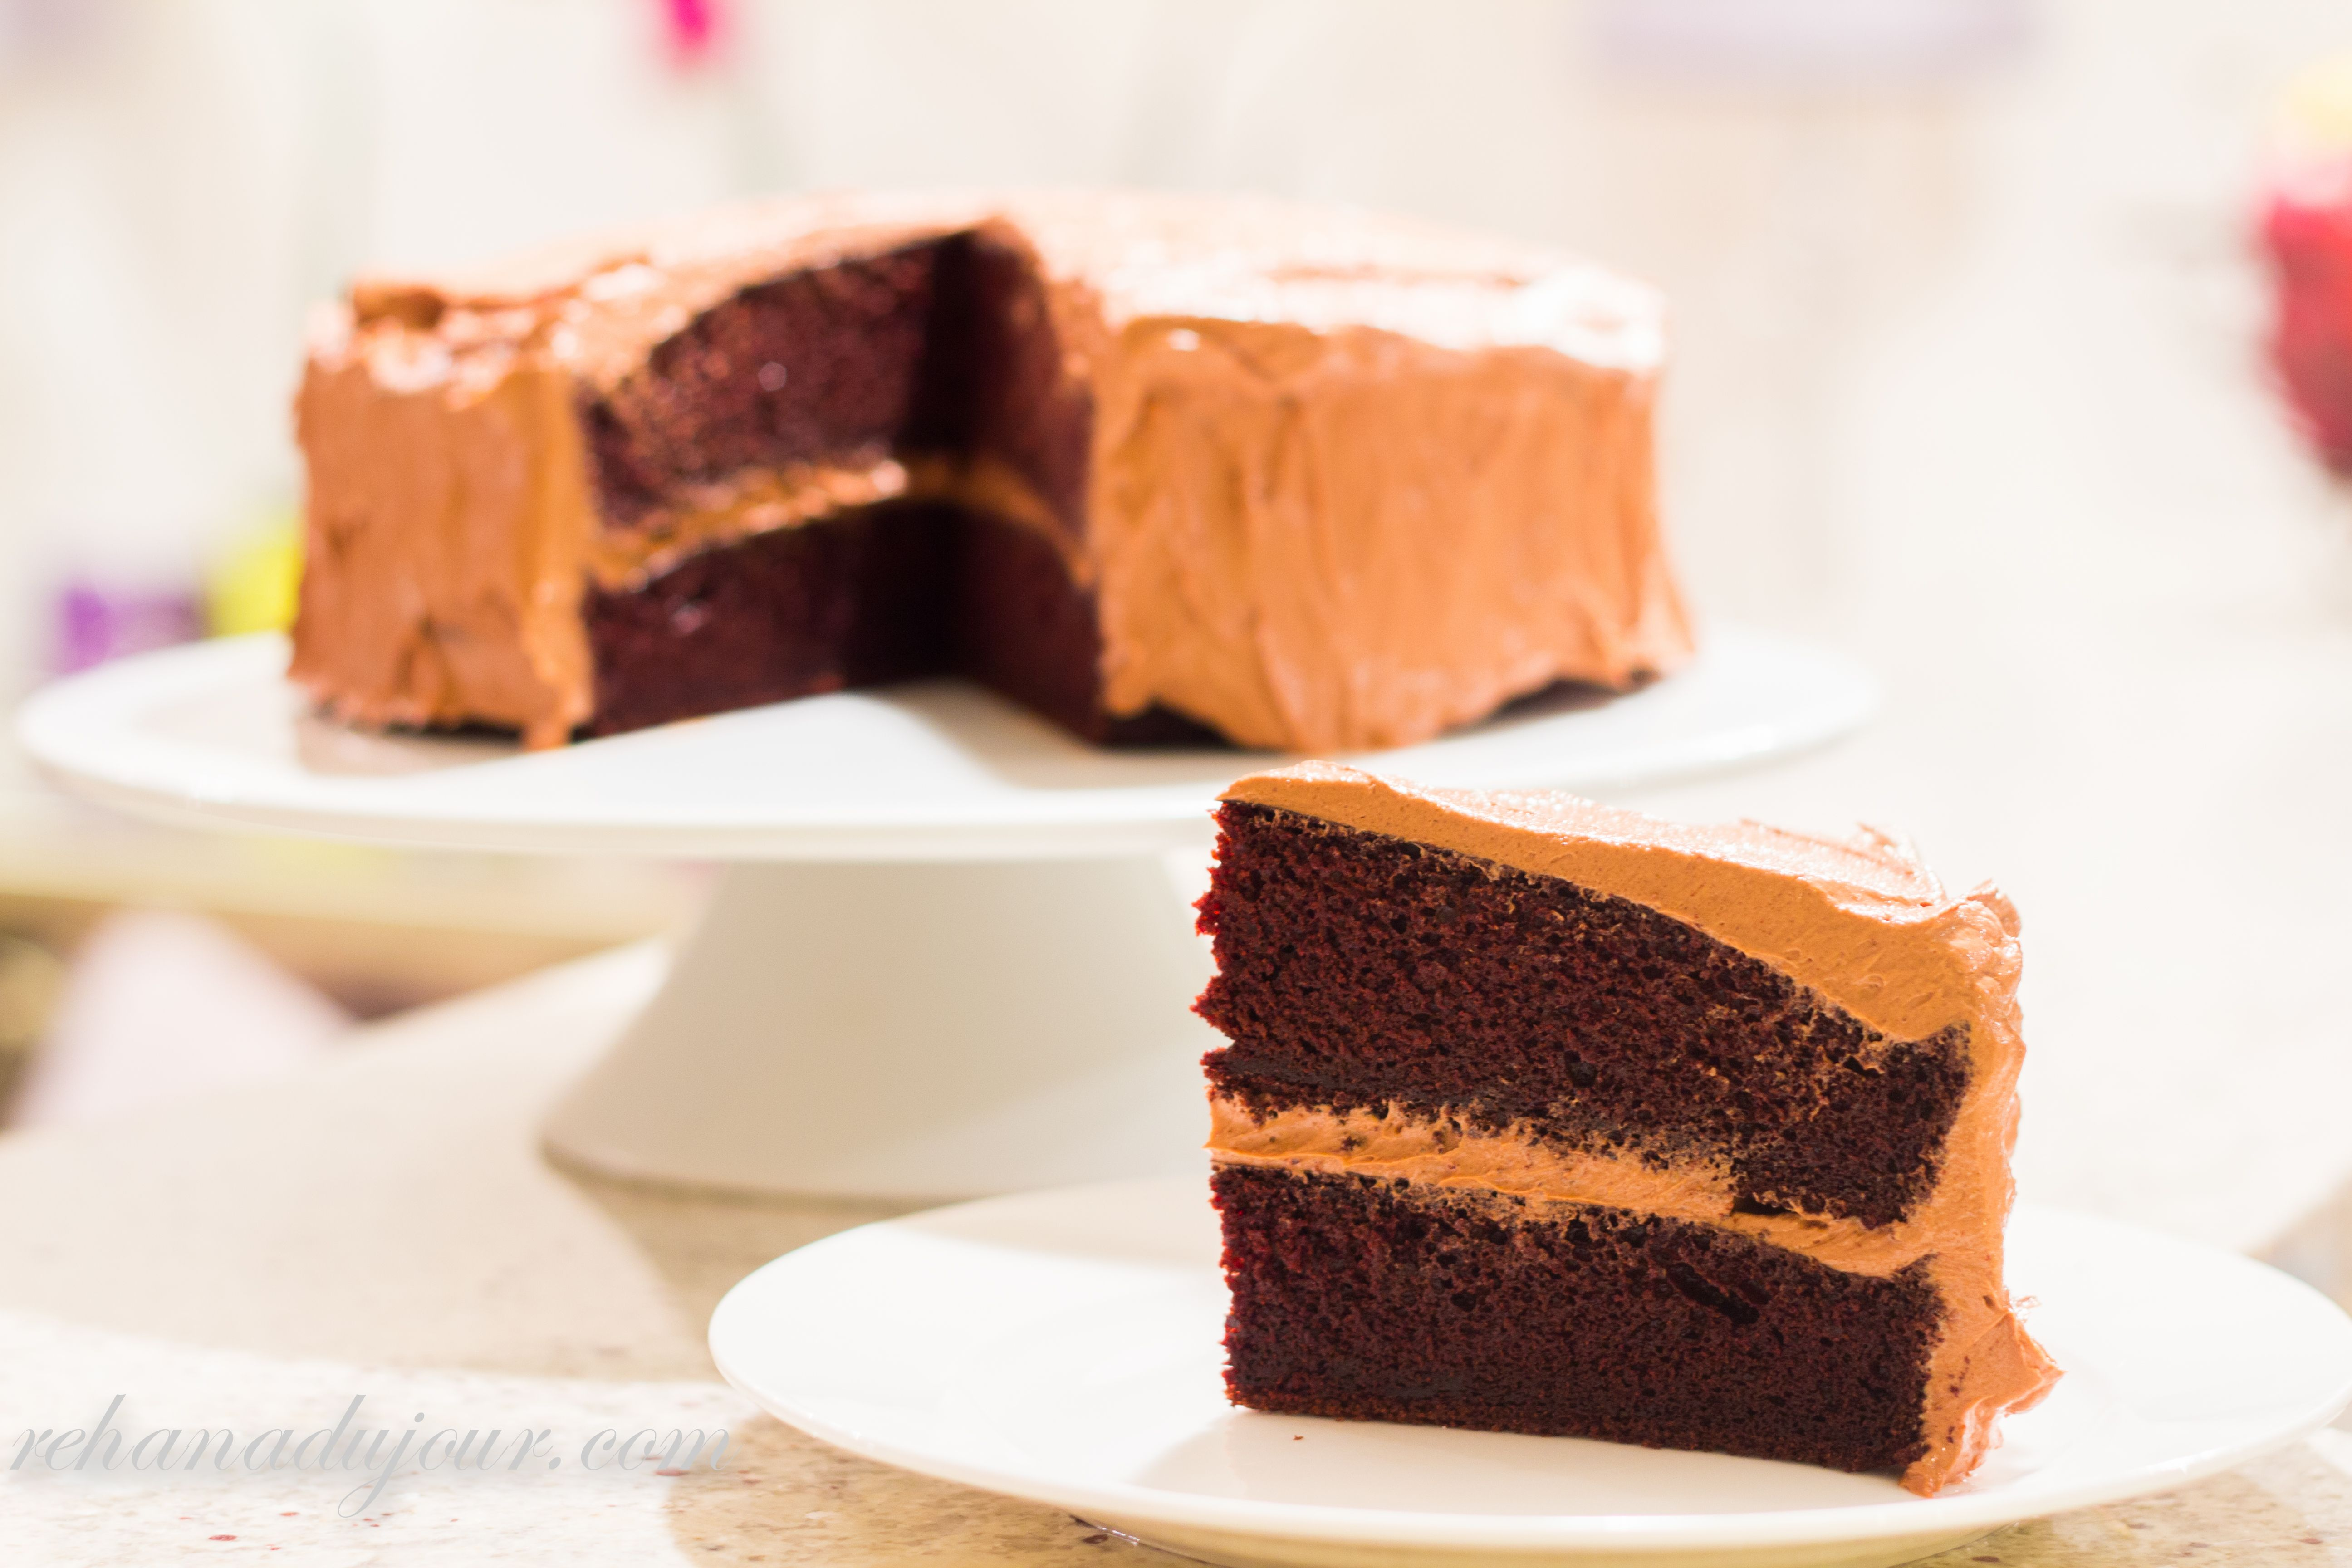 Made Diffe Frosting Beatty S Chocolate Cake By Ina Garten Unbelievably Great Easy